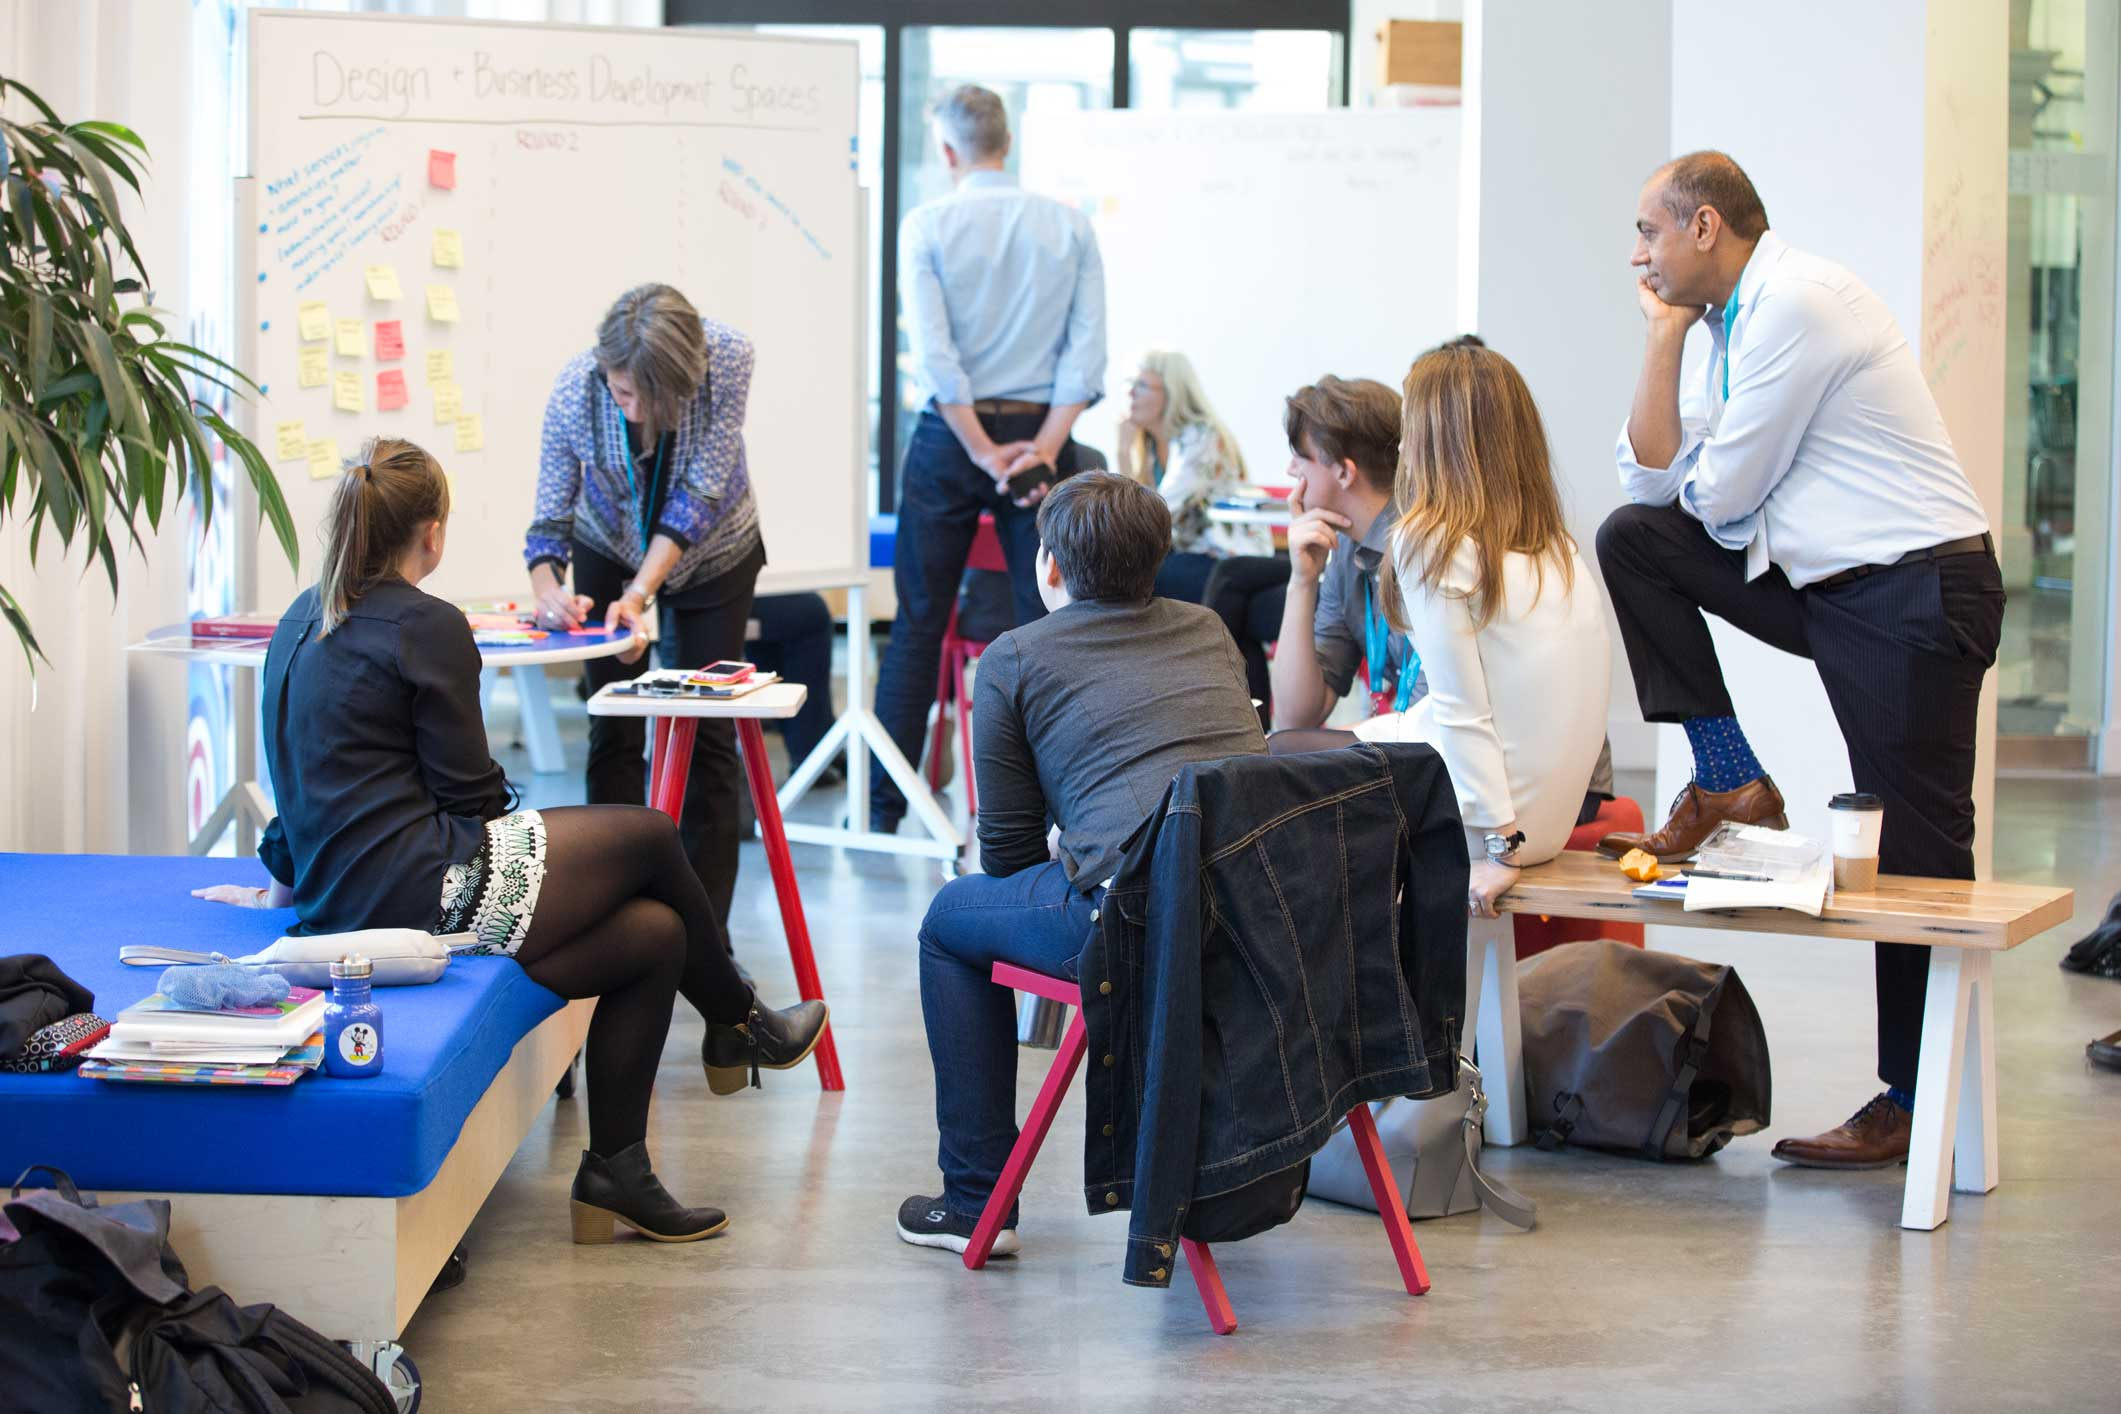 Group of people brainstorming in a light filled room.